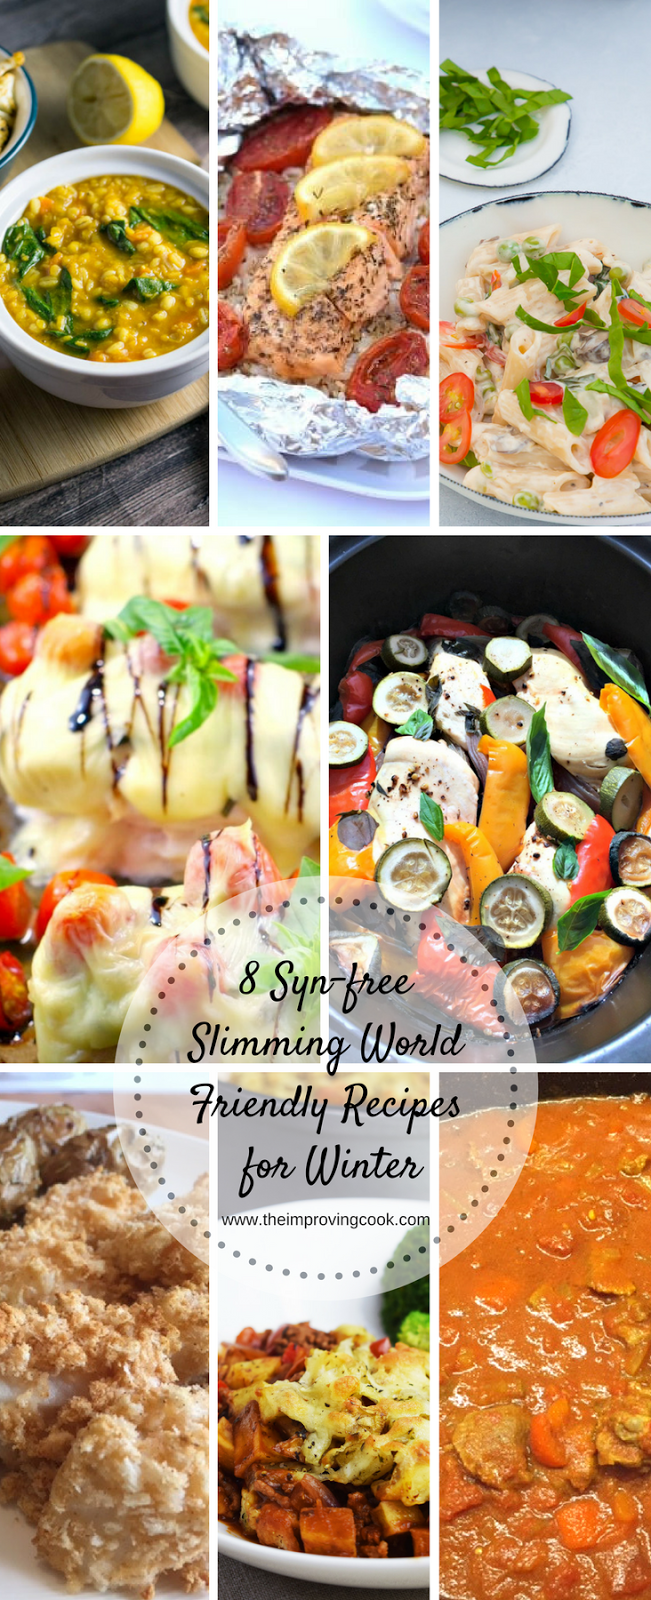 Eight Syn-Free Slimming World Friendly Meals for Winter